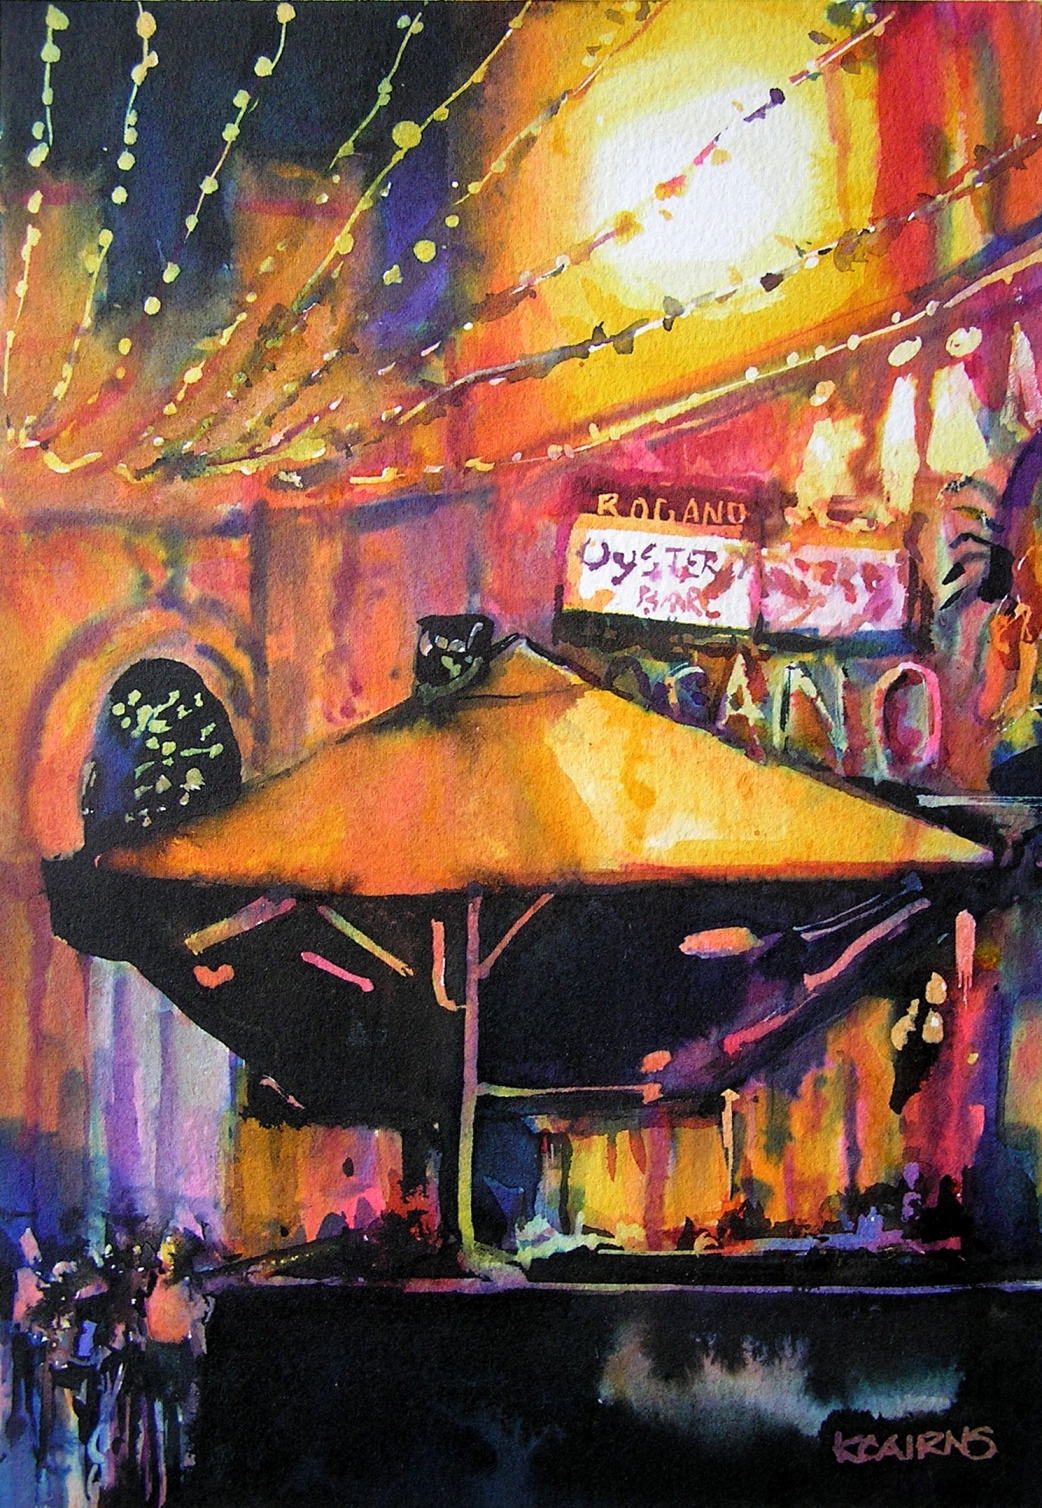 'Cocktail Hour at the Rogano ' by artist Karen Cairns